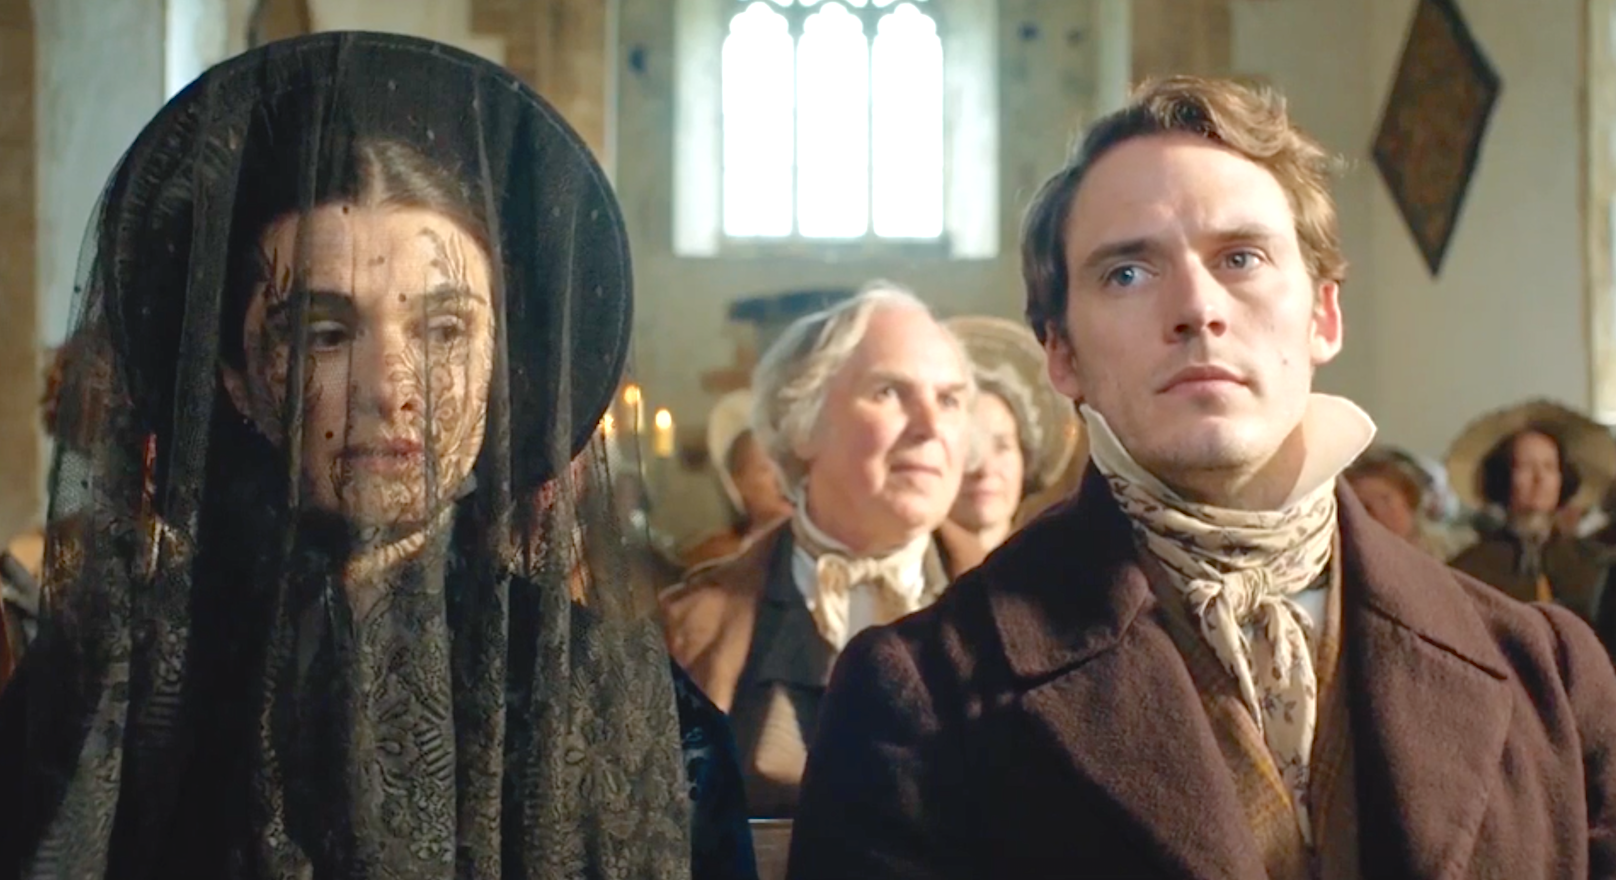 'My Cousin Rachel' is a dark but overlong story of twisted love